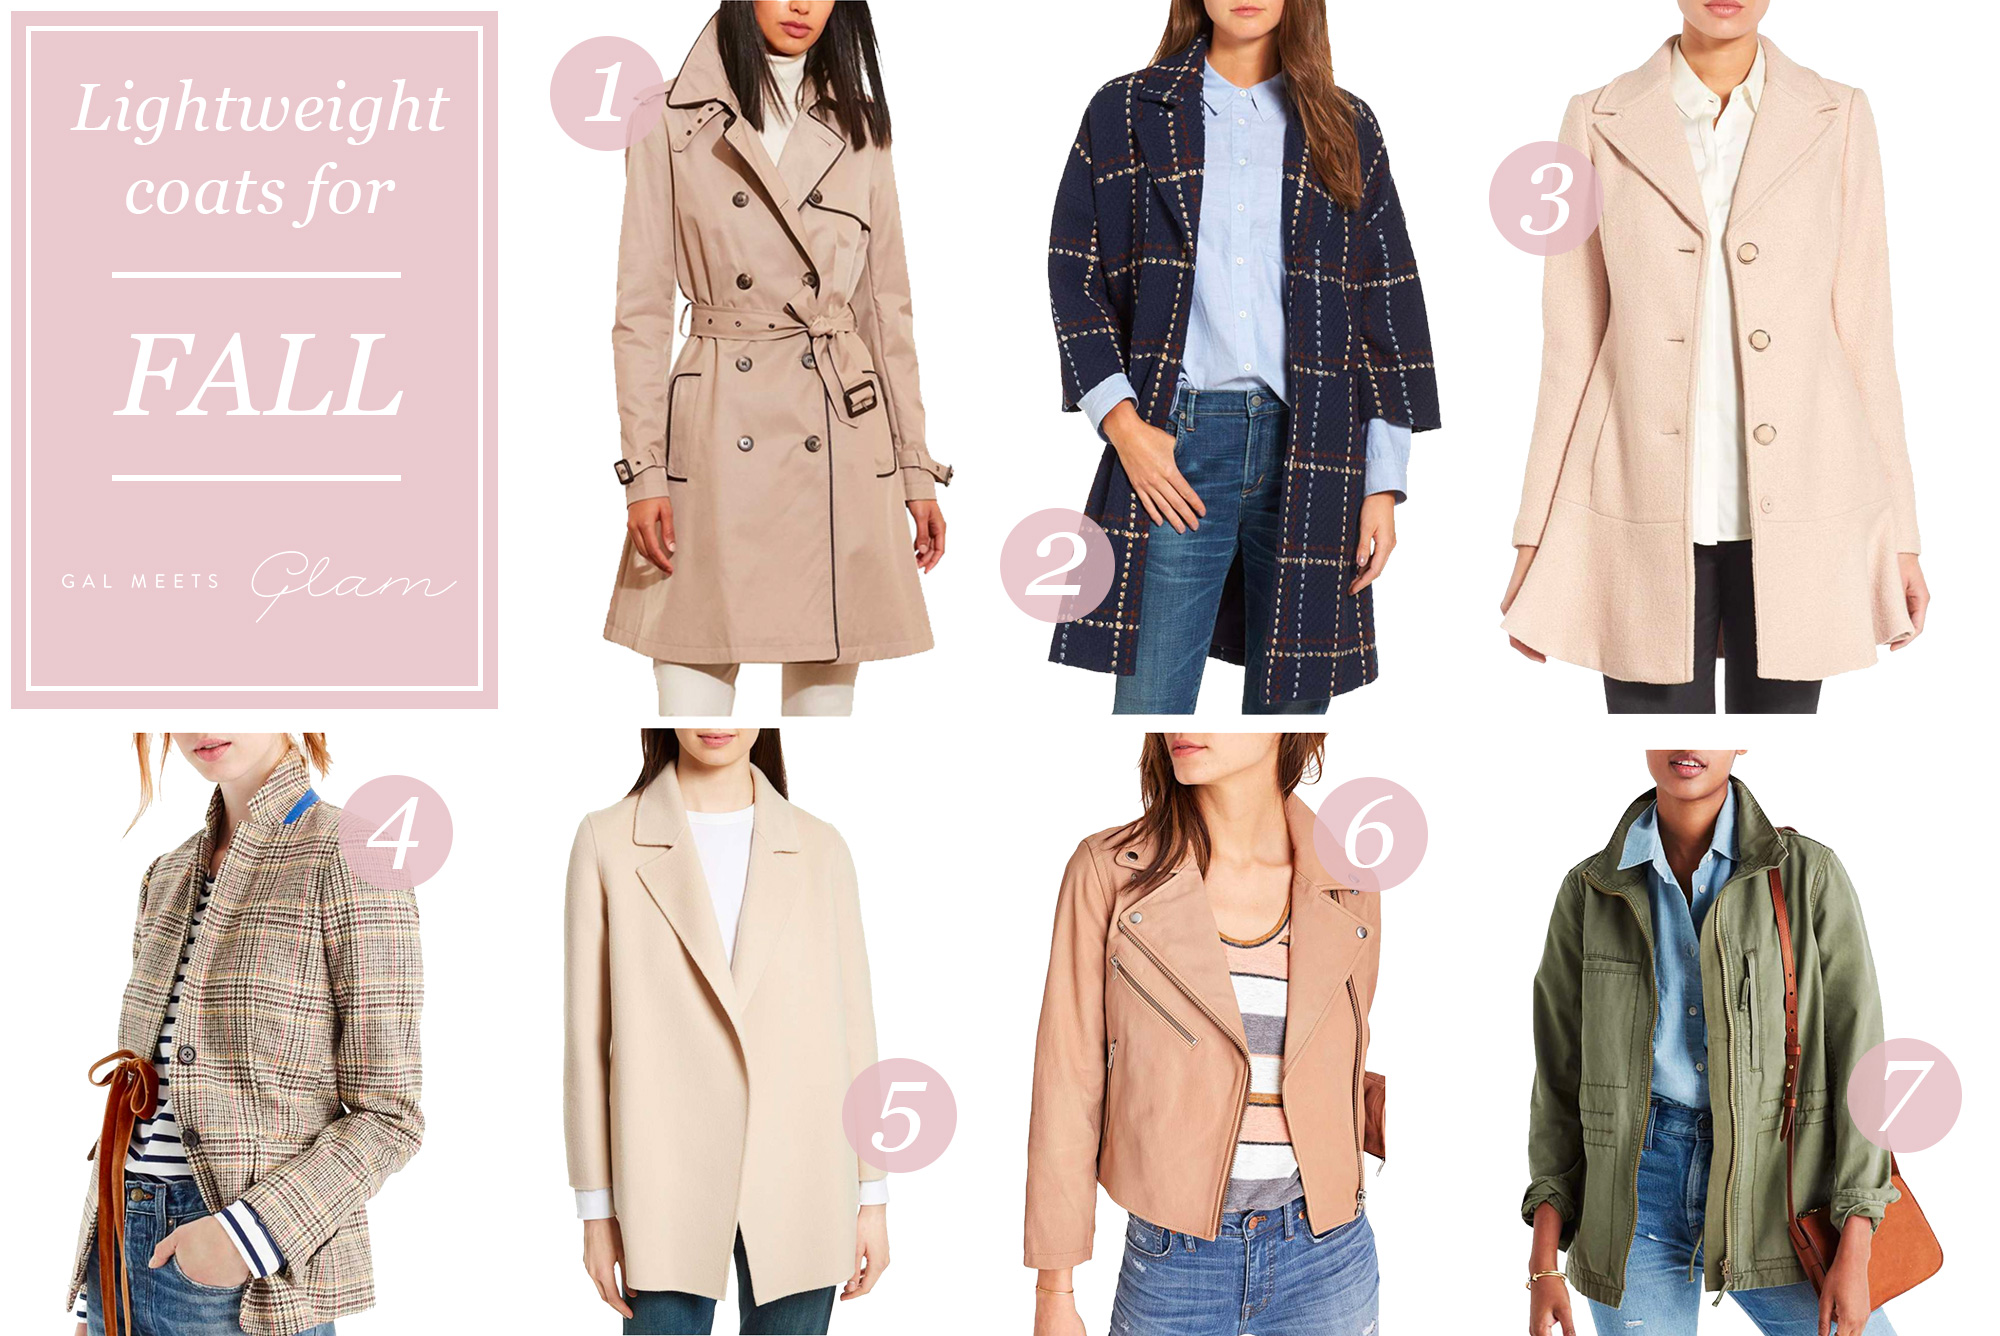 gal-meets-glam-lightweight-coats-v.2